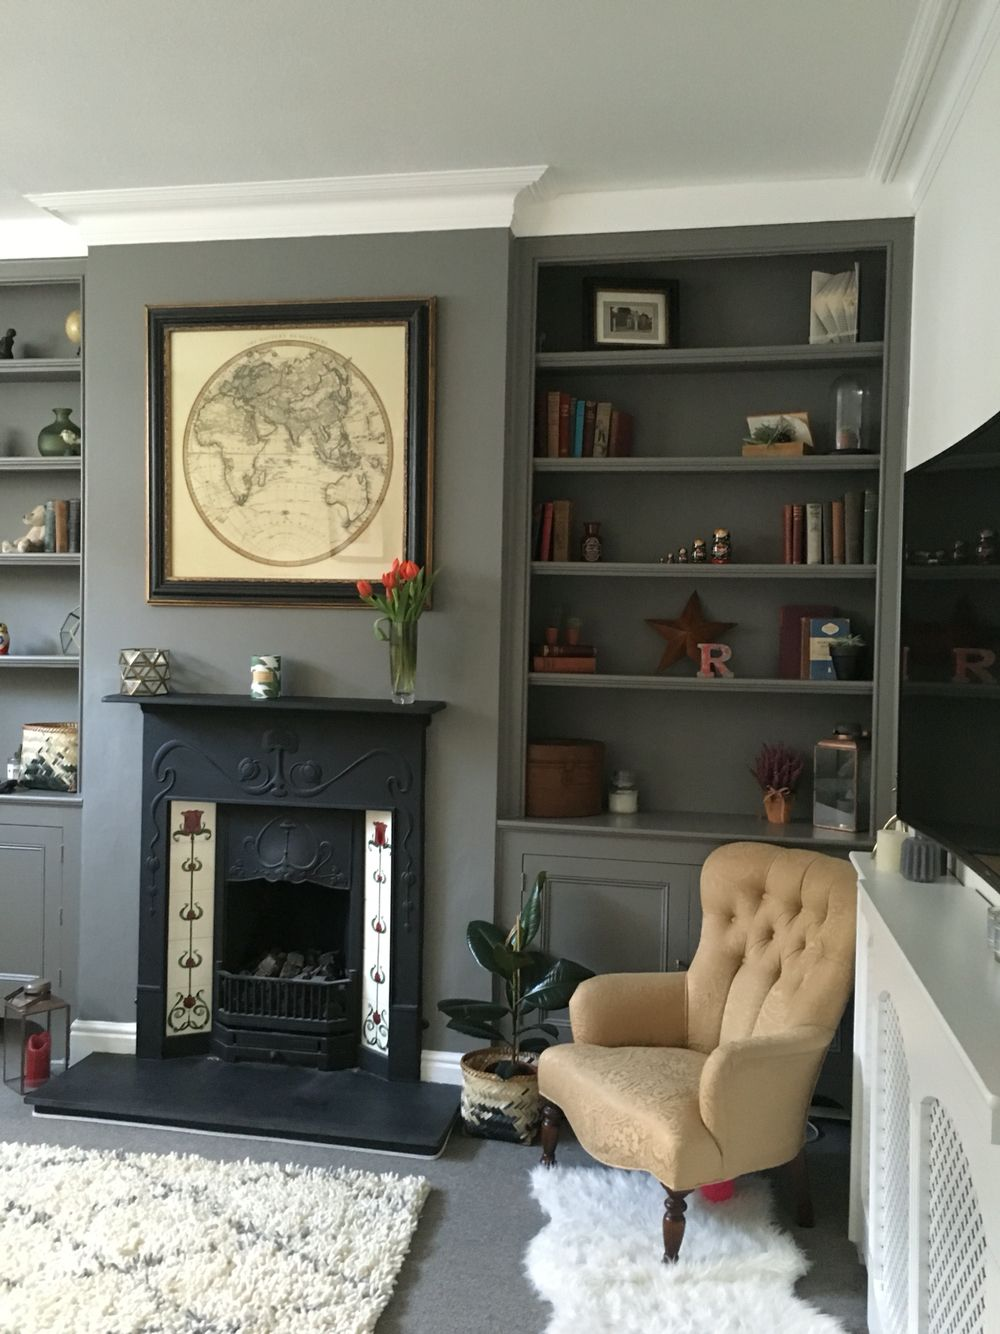 Www Overatkates Com Farrow And Ball Moles Breath Victorian Living Room Shelf Styling Grey Livi Victorian Living Room Living Room Shelves Living Room Grey